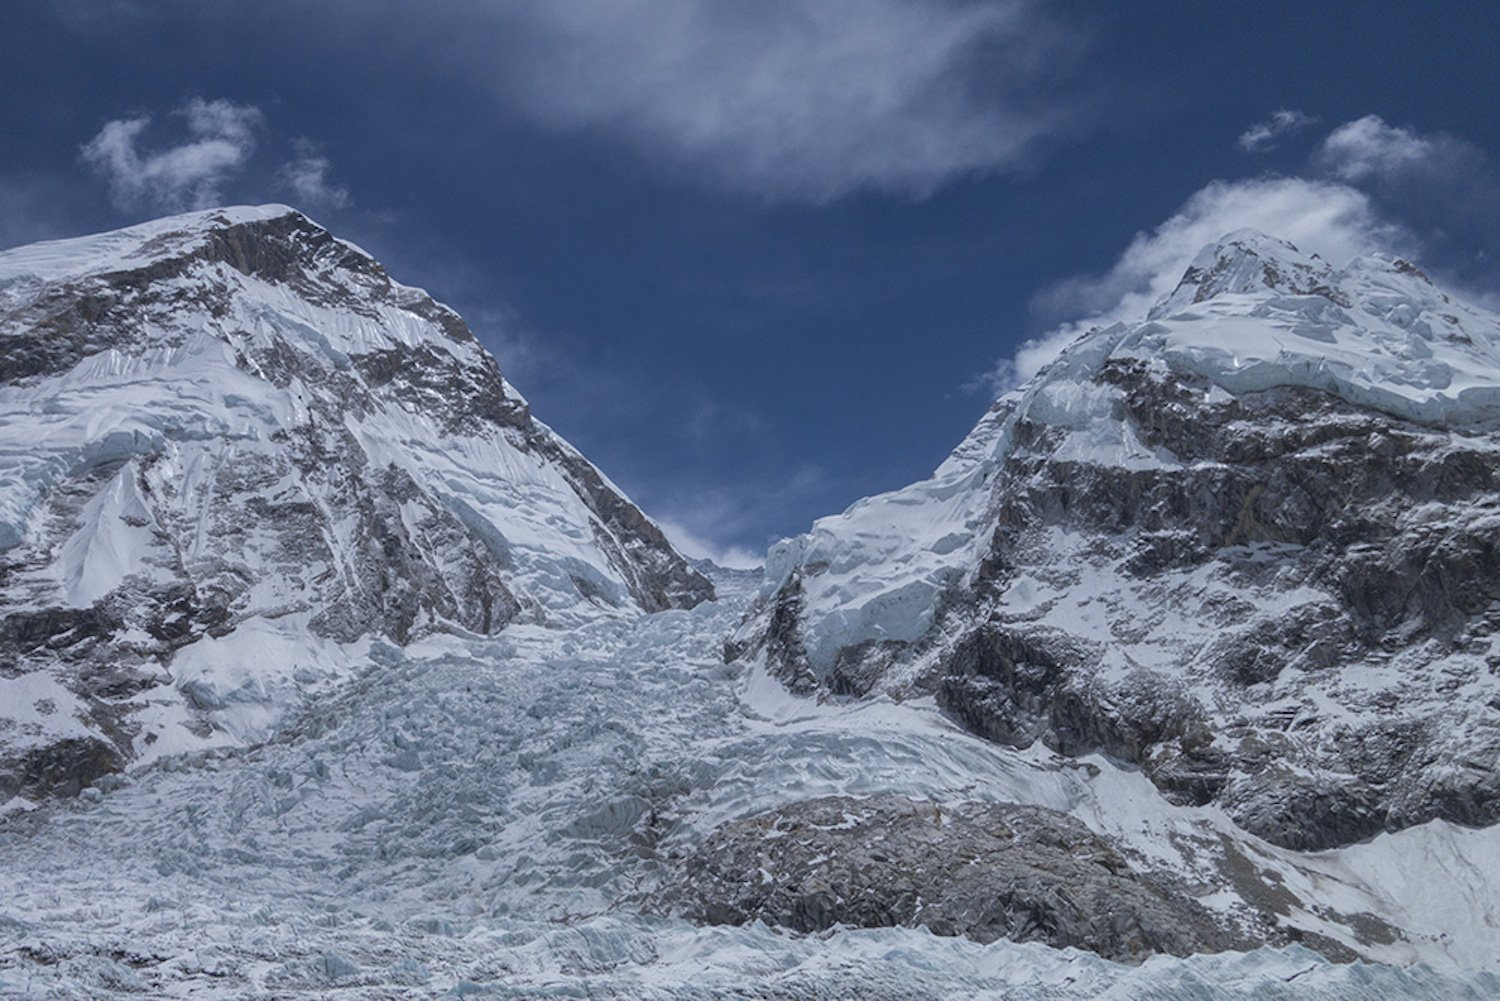 Glacier melt on Everest exposes the bodies of dead climbers. (Credit: CNN)